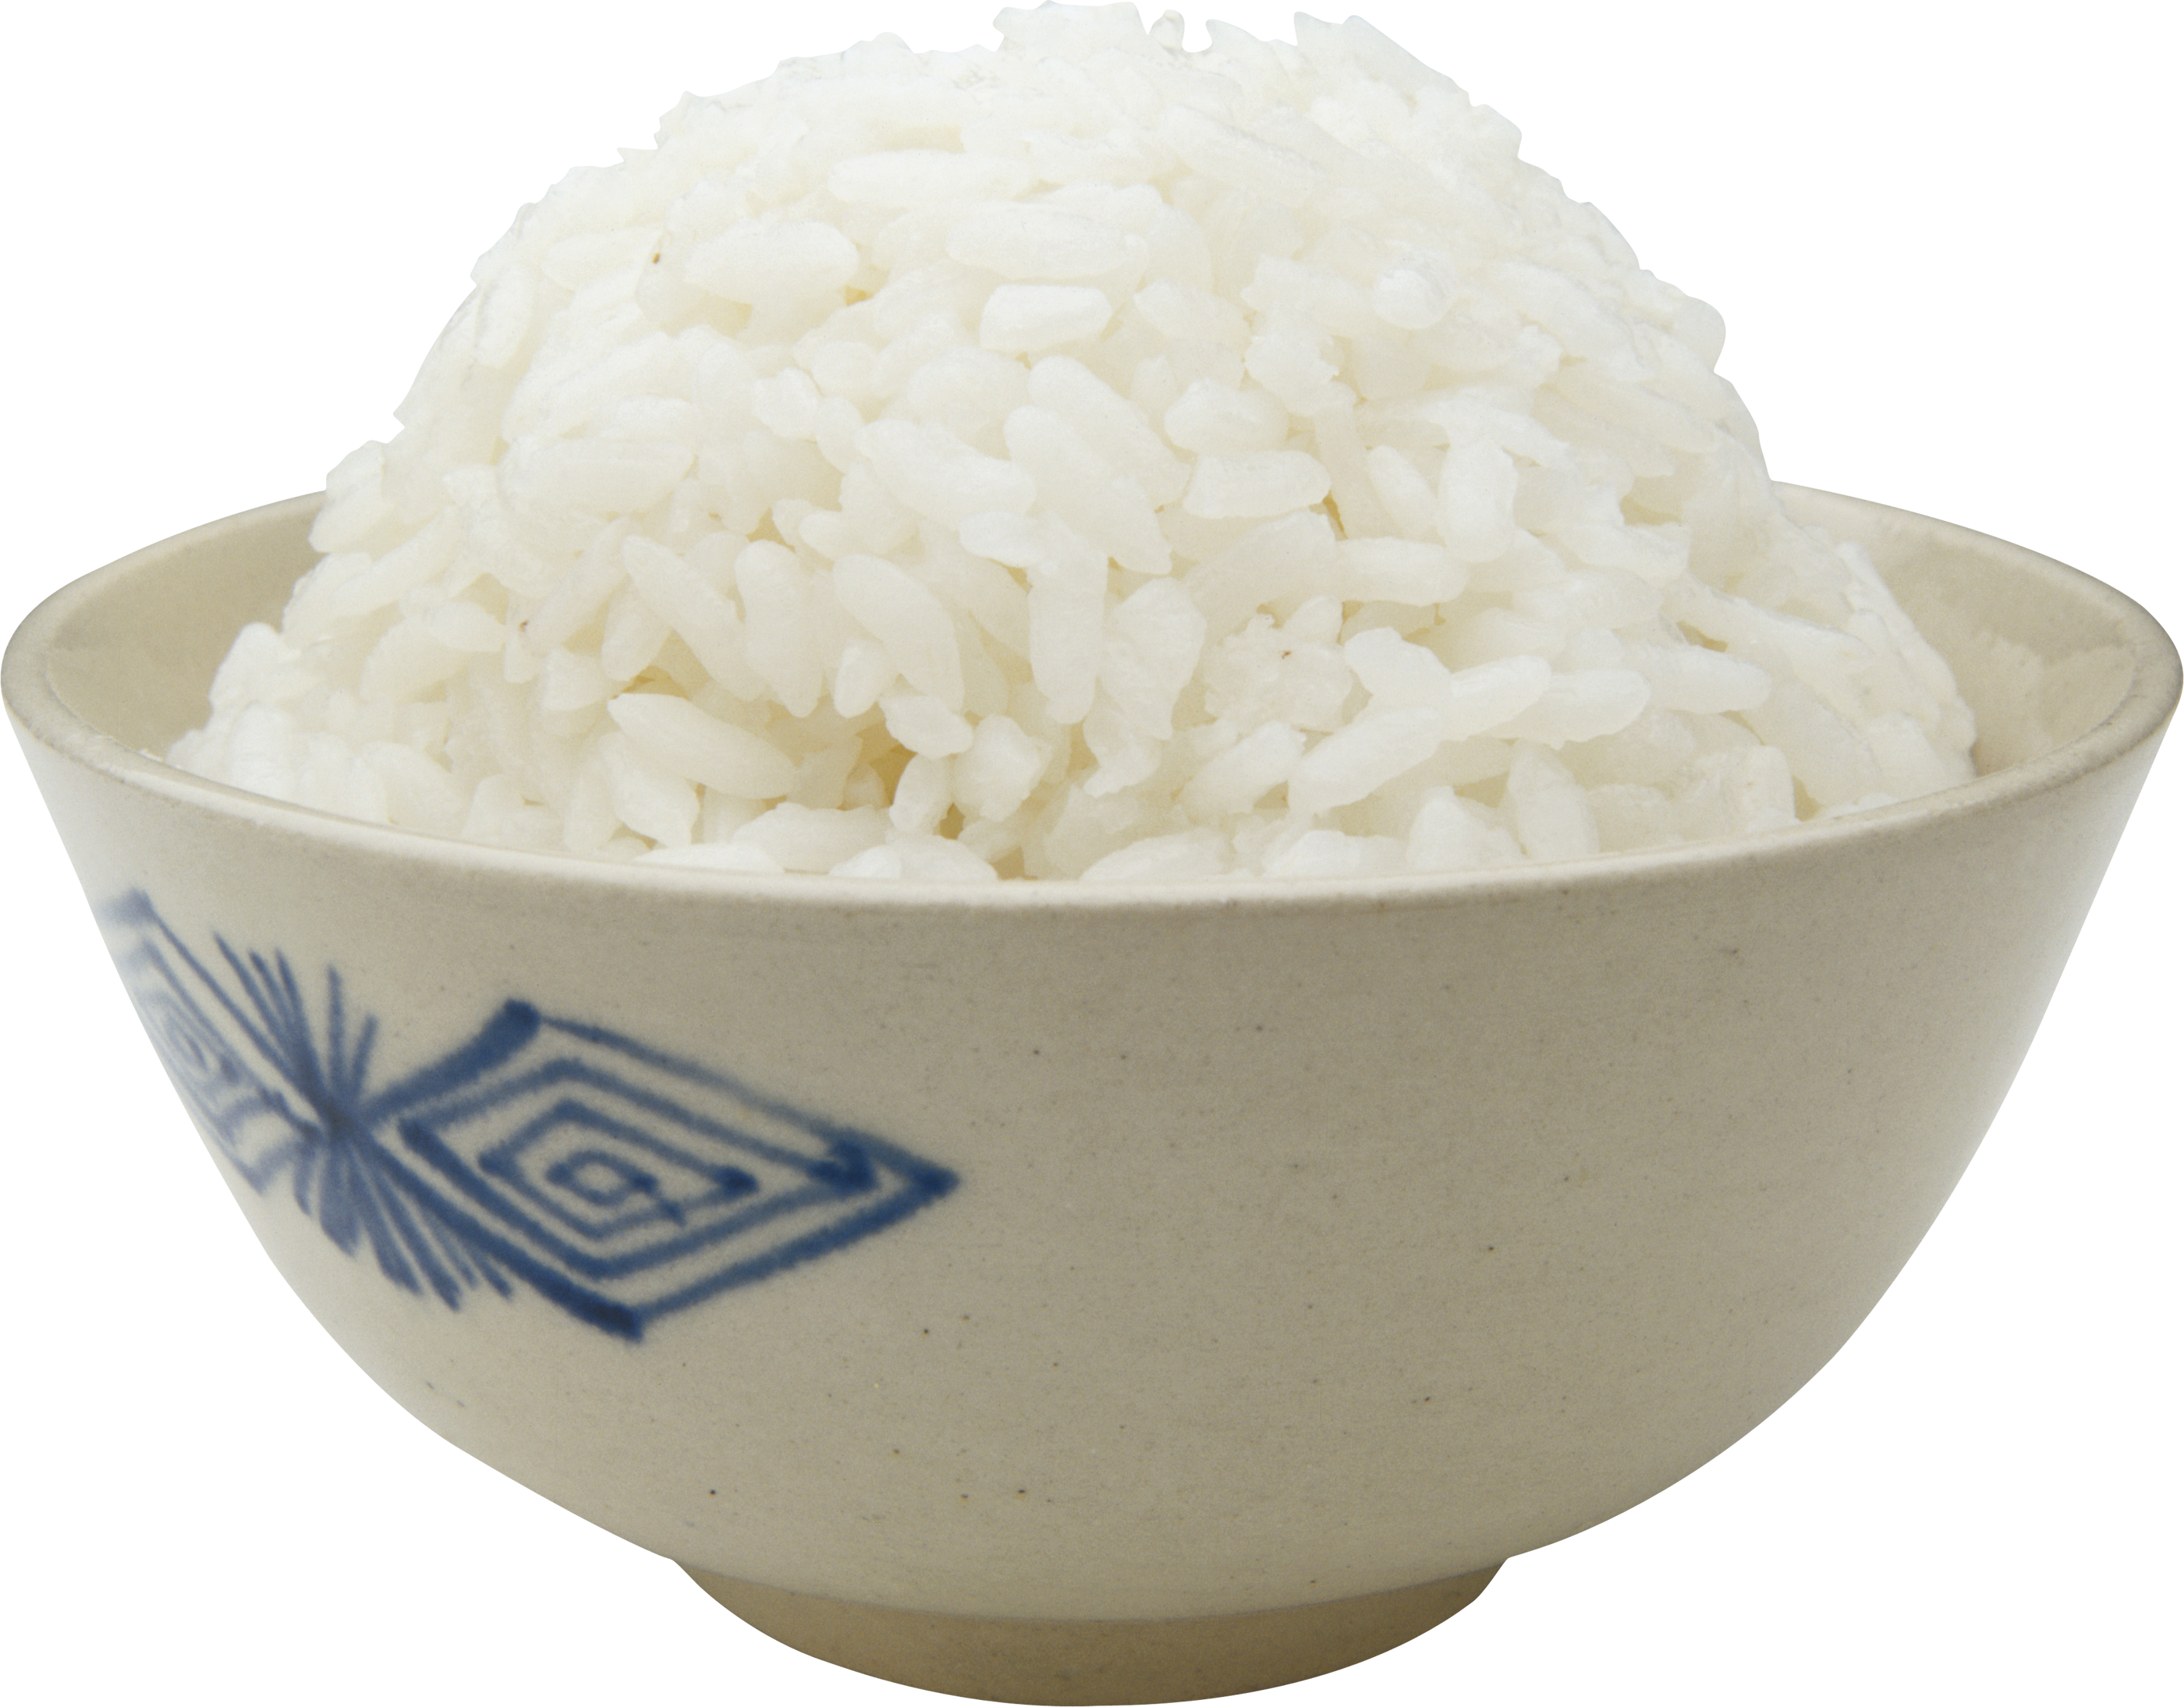 Png images free download. Grain clipart rice